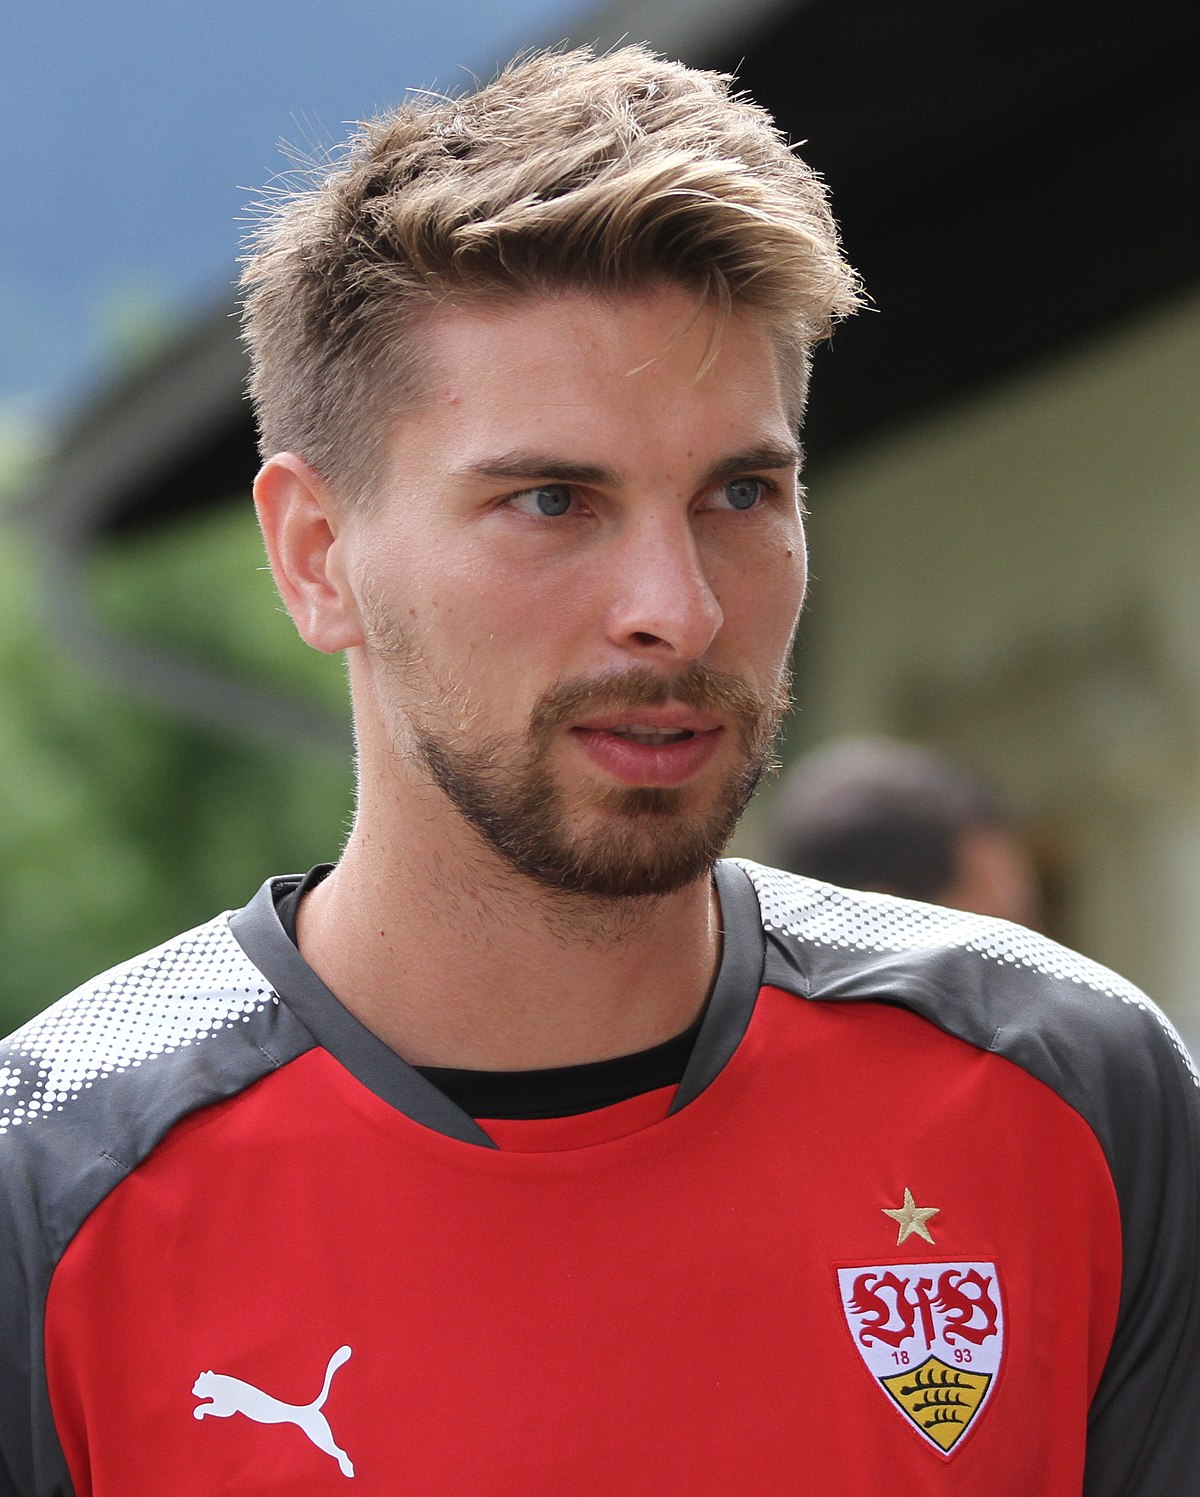 ron robert zieler facebook